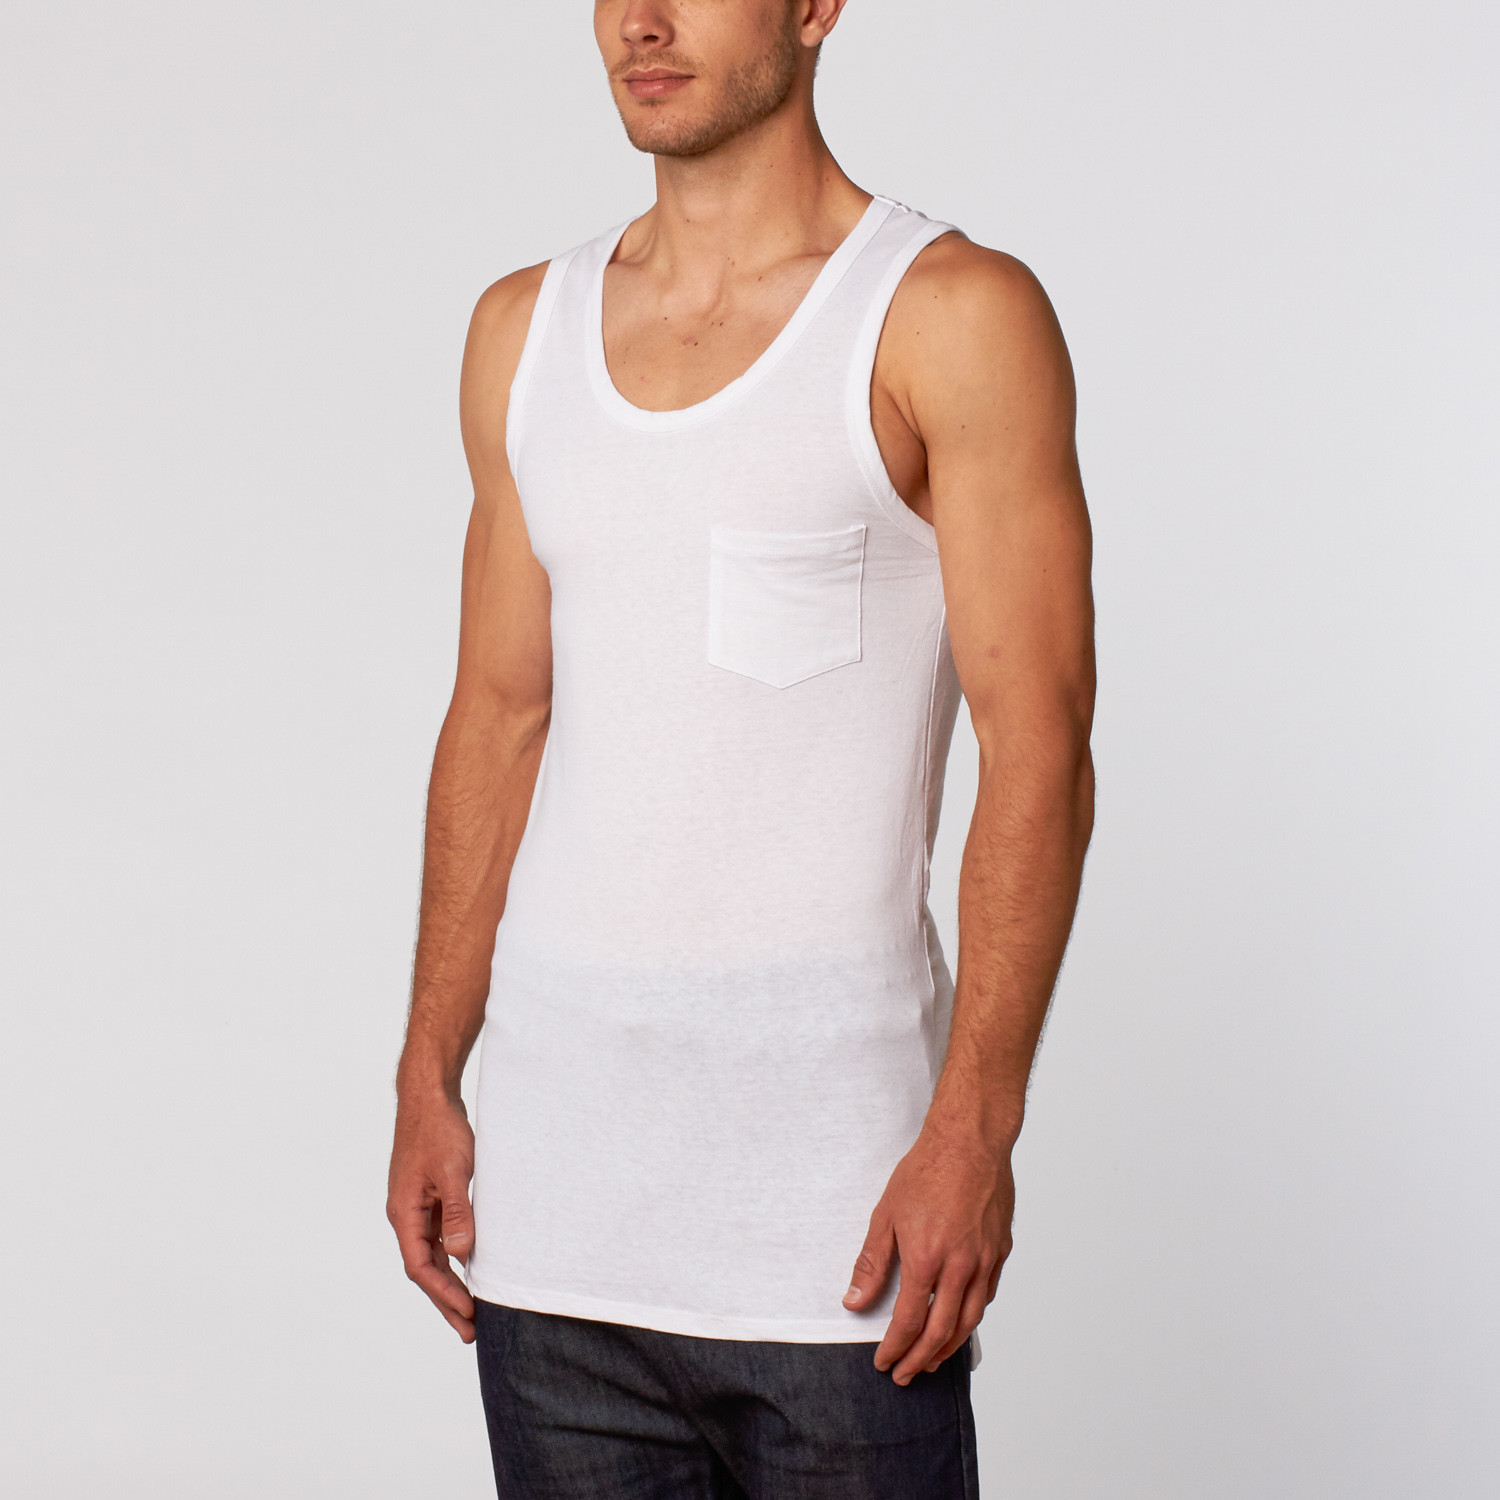 49bb9fc2f40c27 Logic Tank Top    White (M) - Goldmyne - Touch of Modern